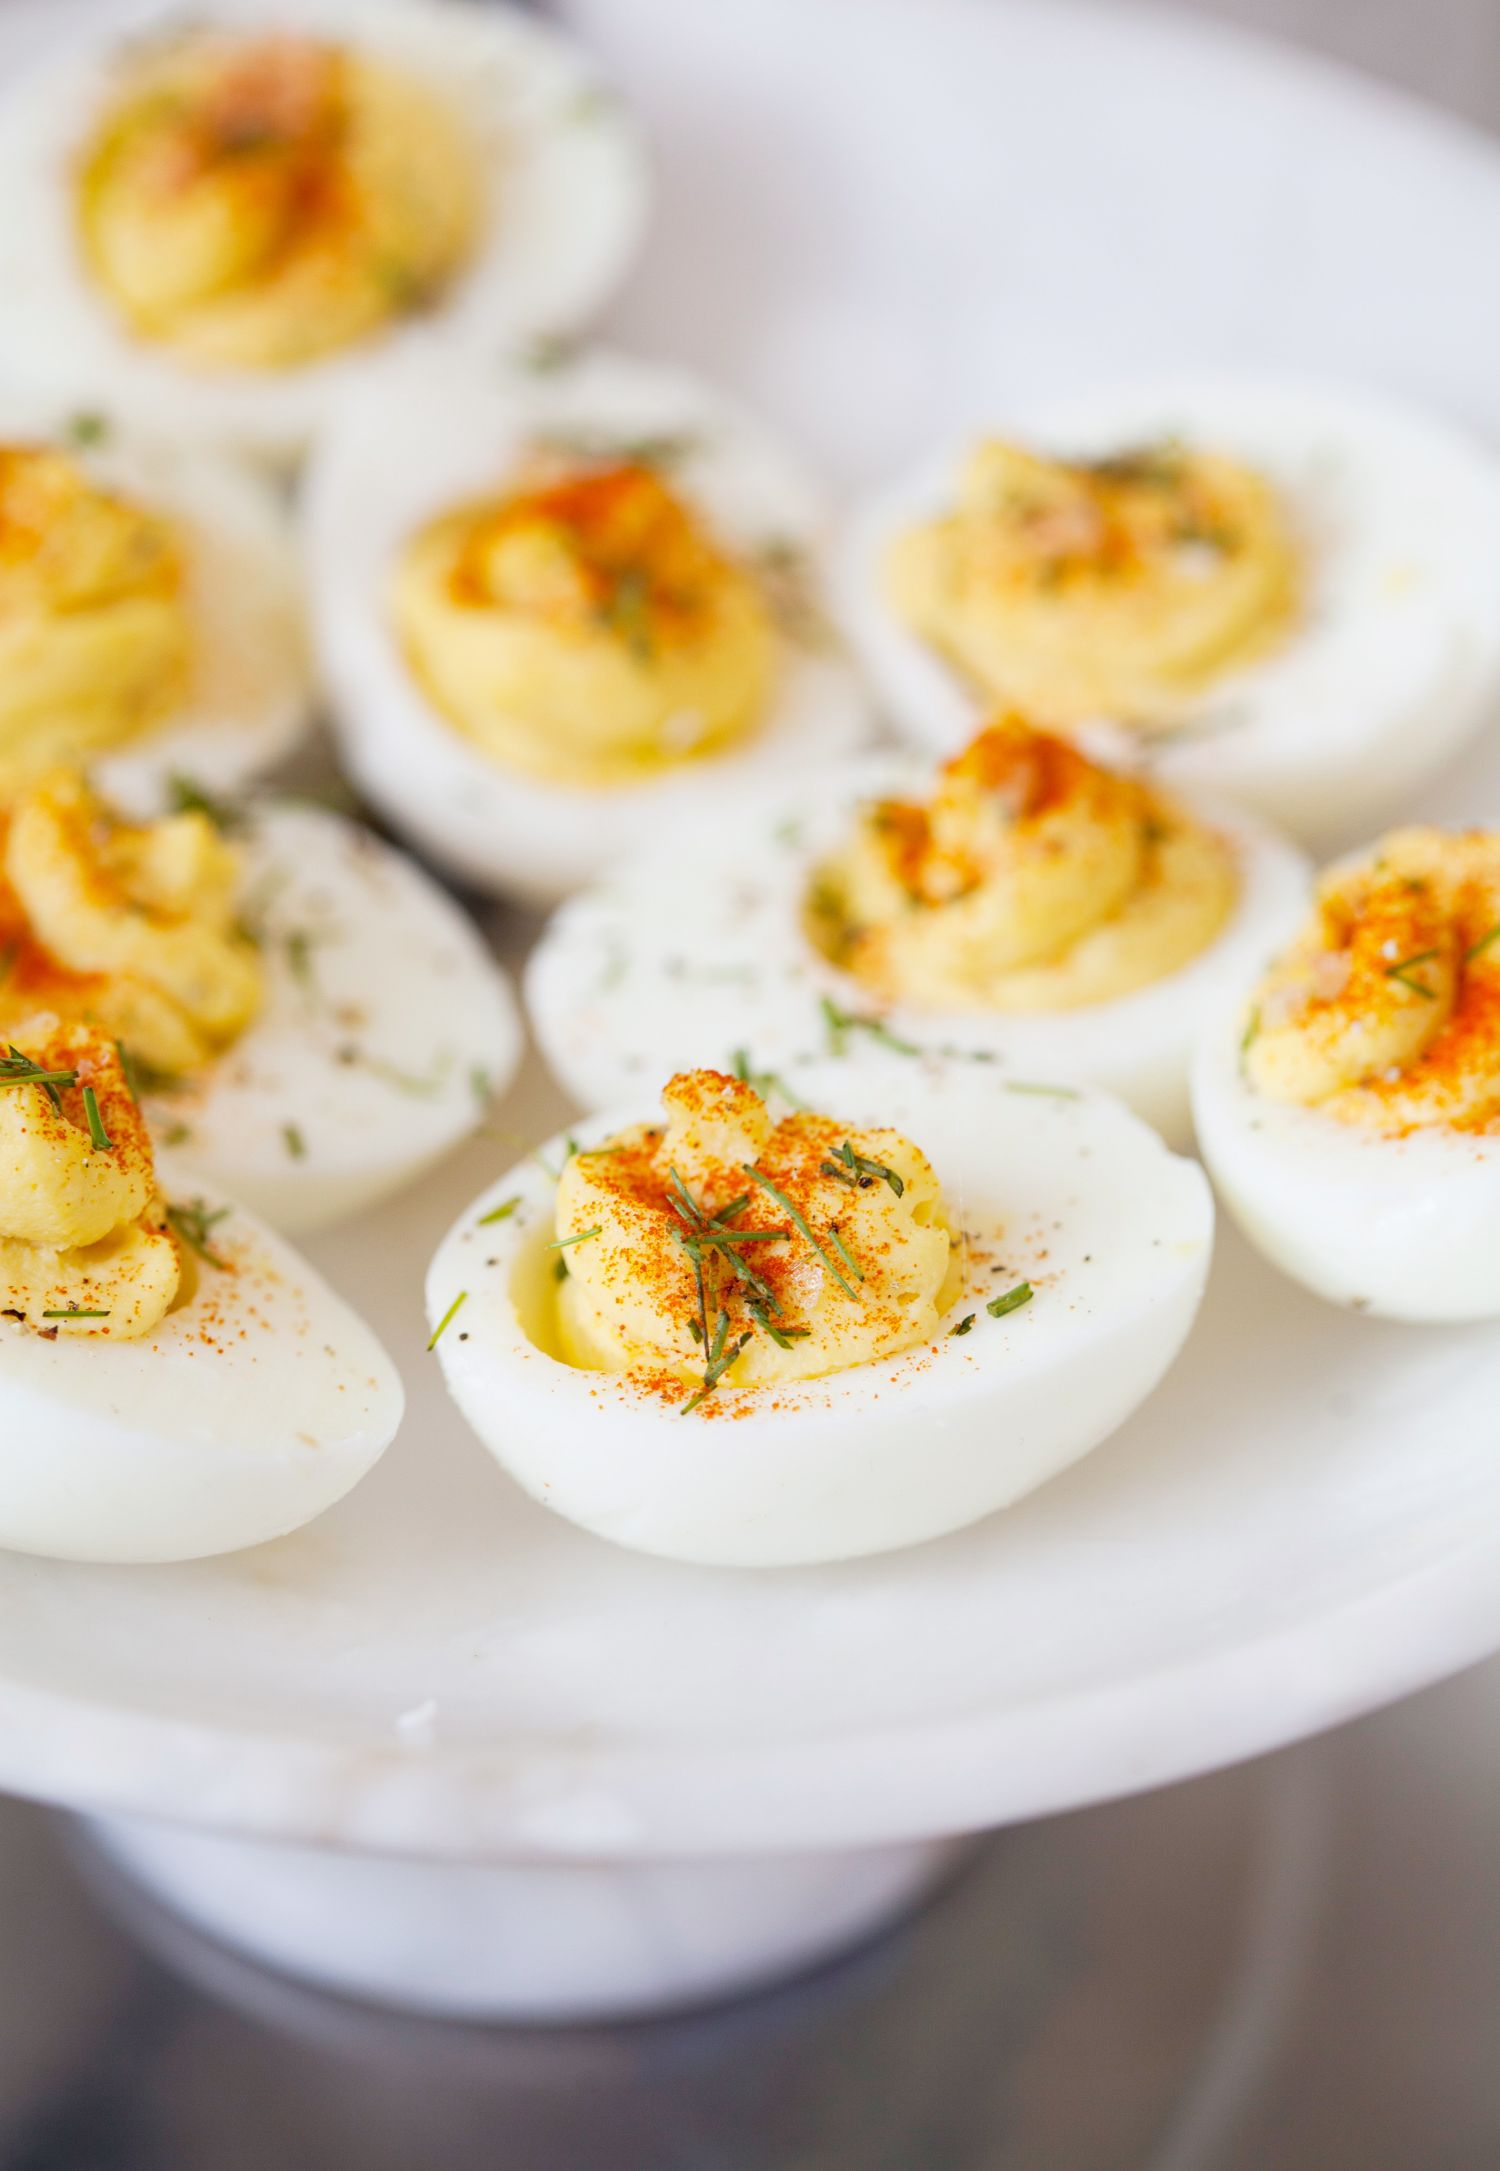 17 Classic Appetizers Everyone Will Love